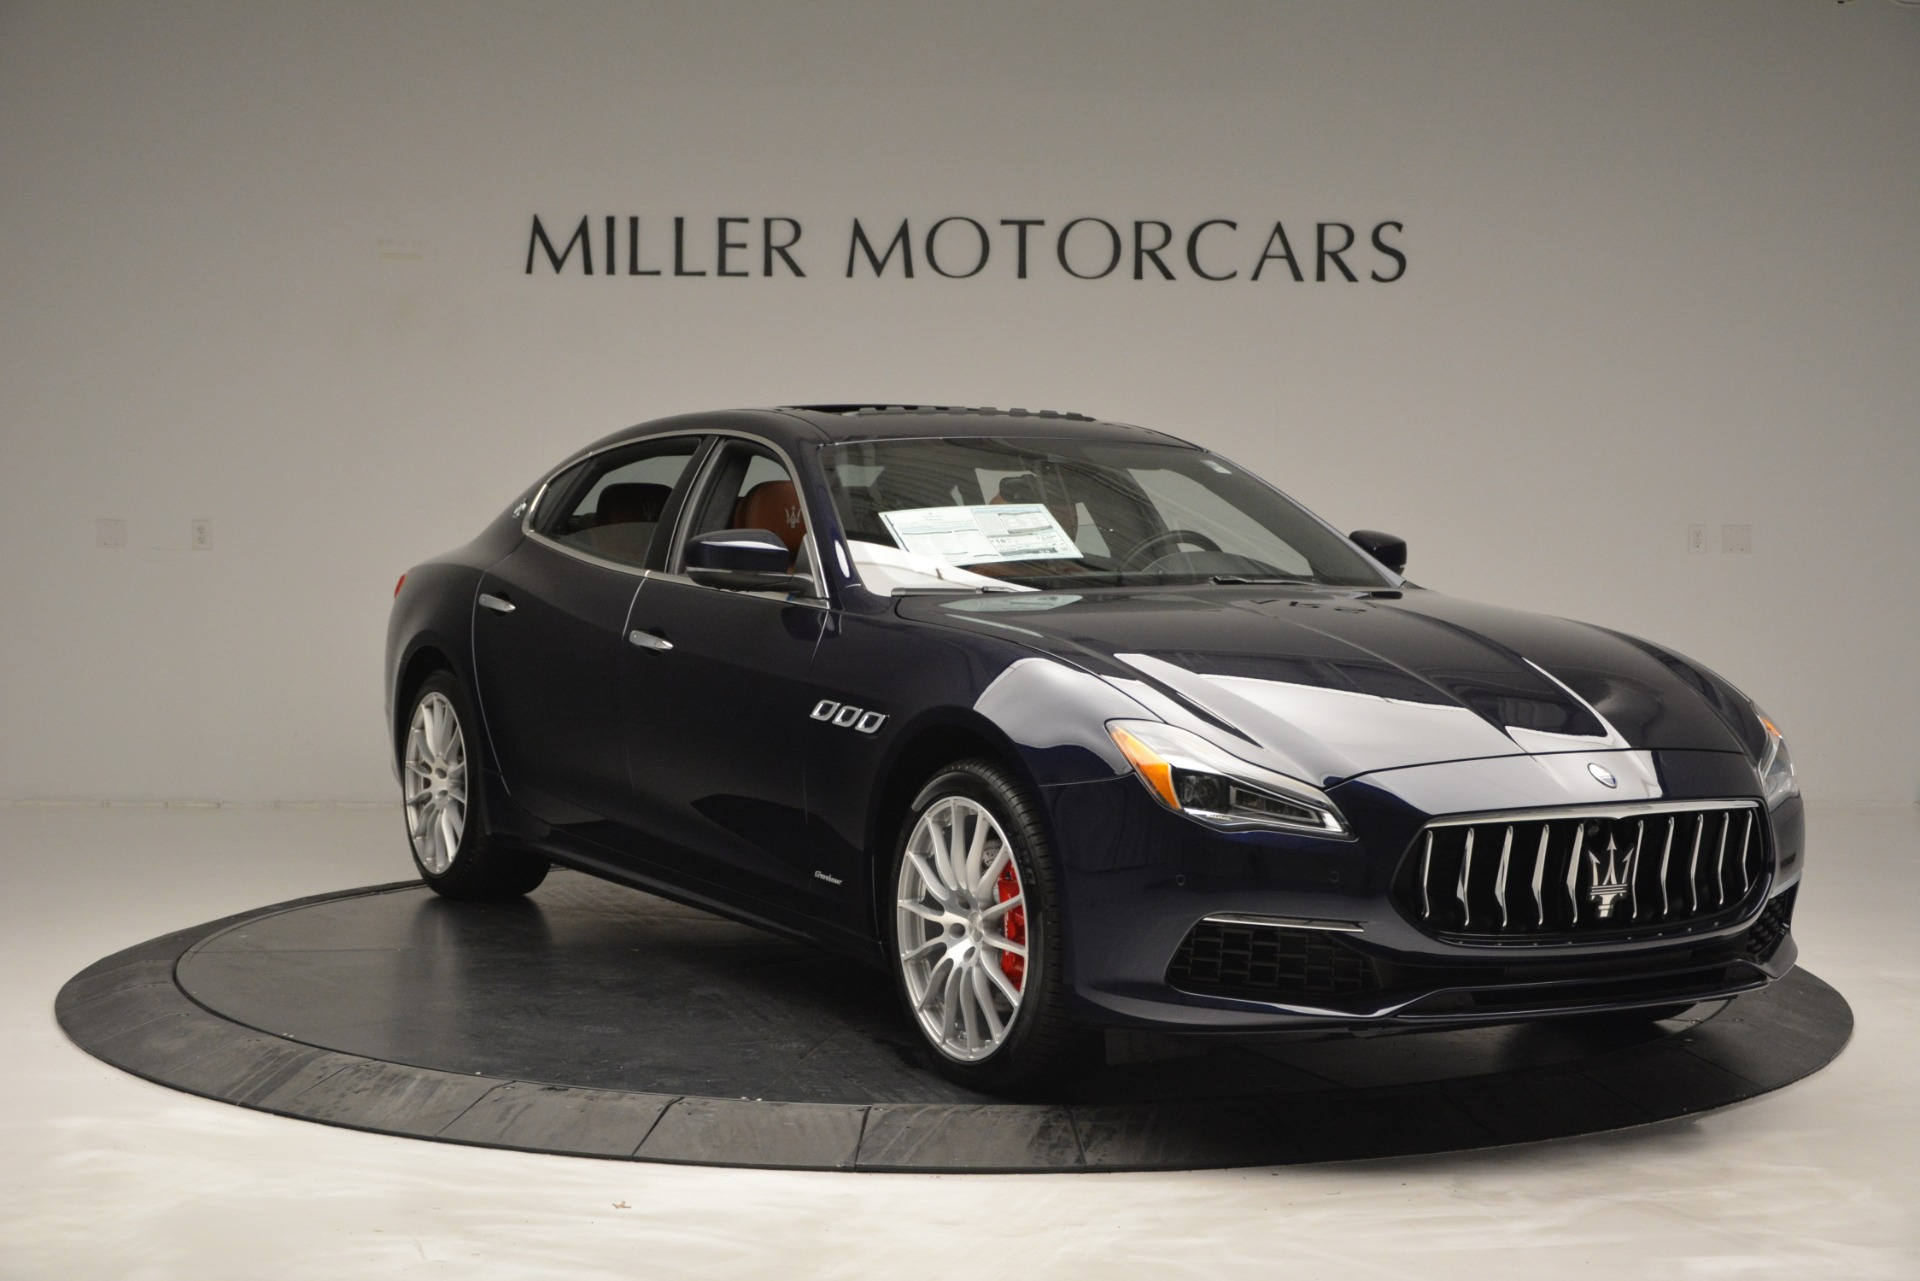 New 2019 Maserati Quattroporte S Q4 GranLusso For Sale In Greenwich, CT 2620_p11